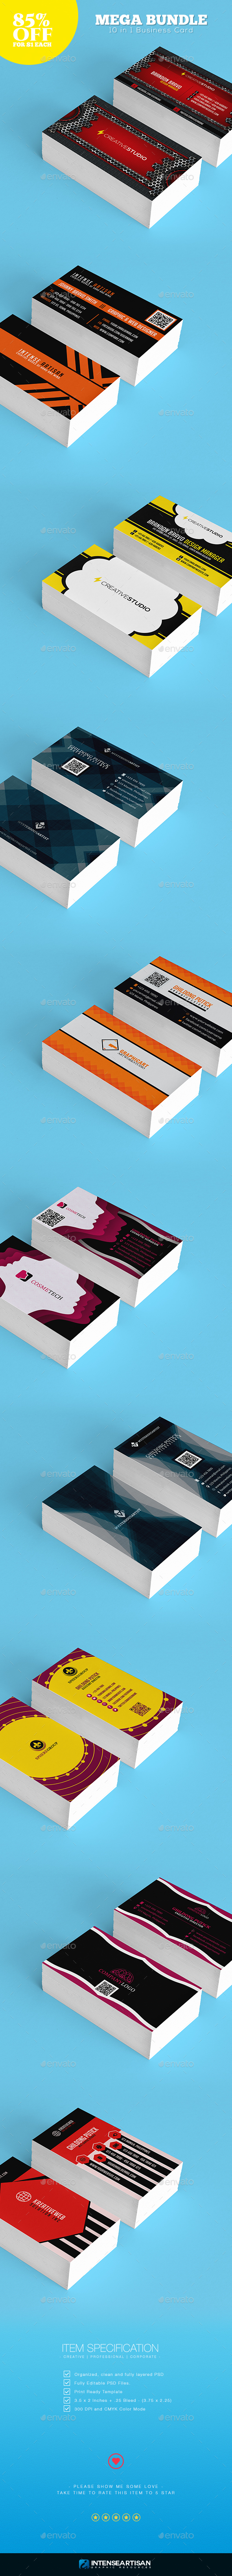 Mega Bundle - 10 in 1 Business Card - Business Cards Print Templates